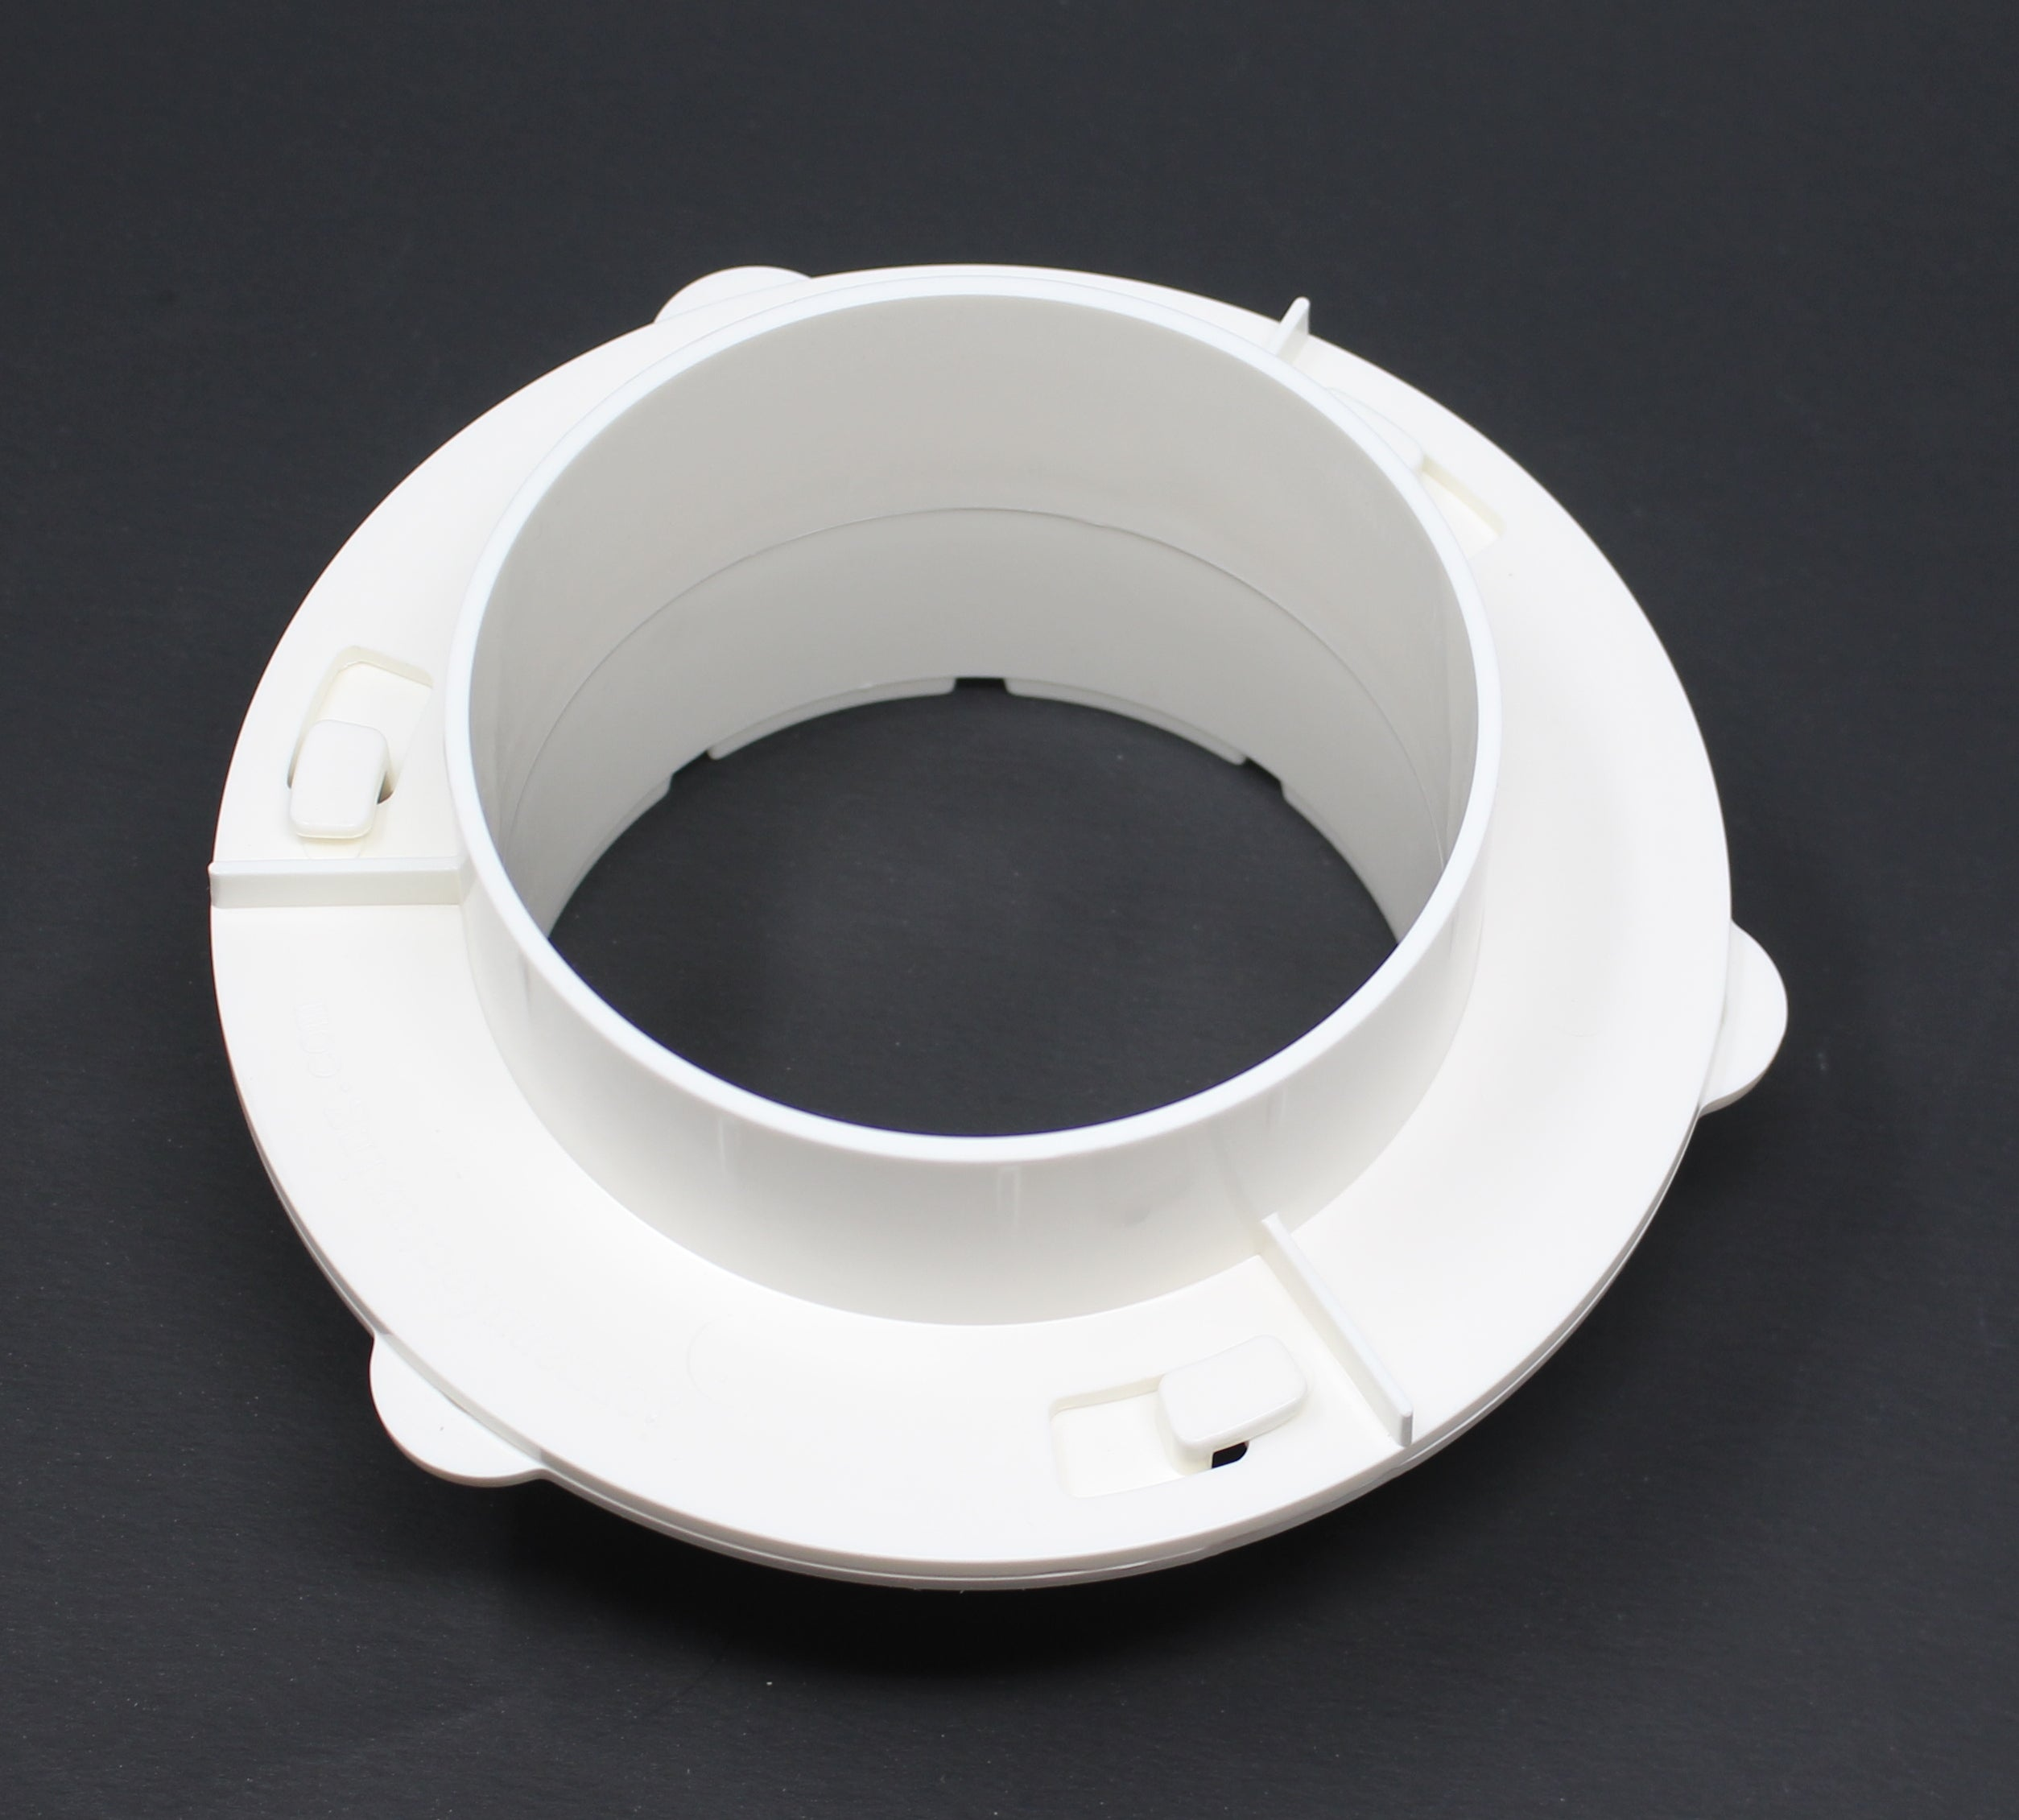 White Dryer Duct To Wall Connector Quick Connect For Dryer